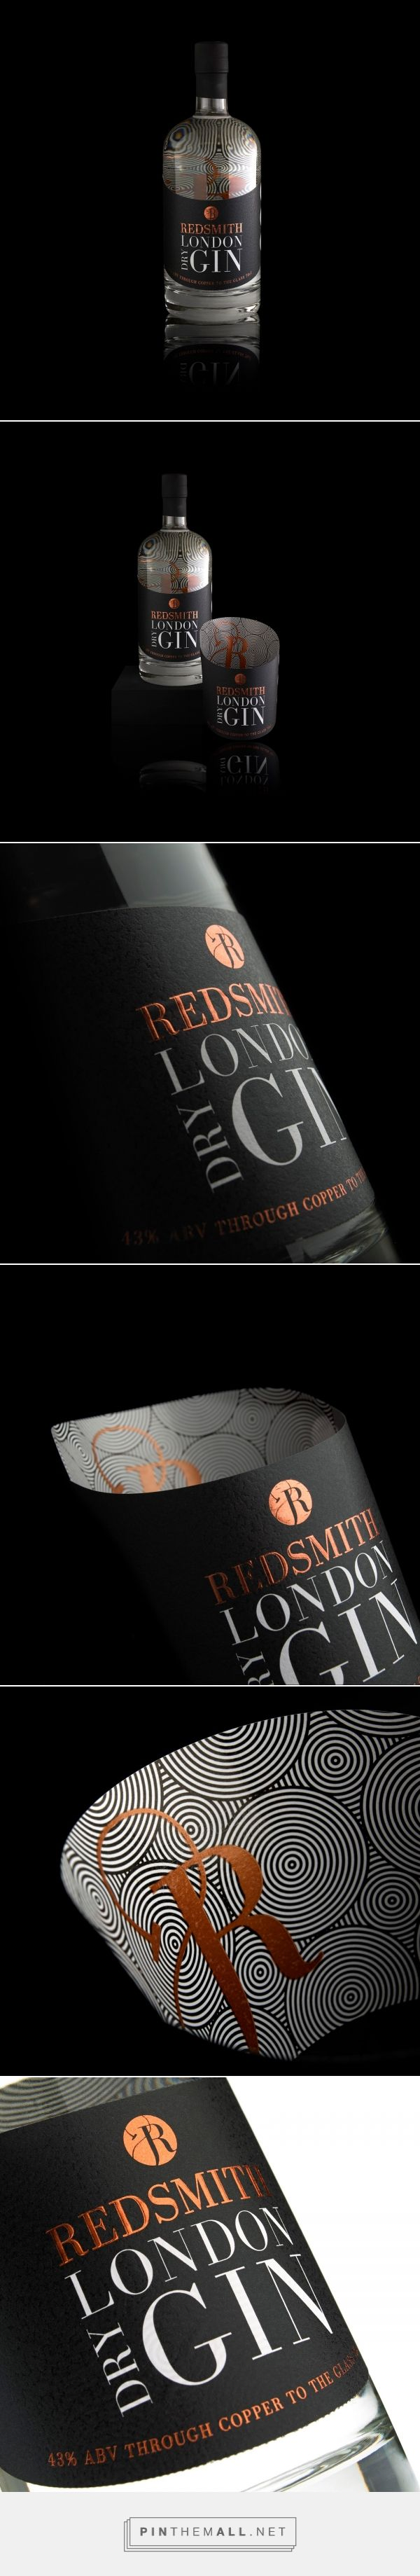 Redsmith London Dry Gin - Packaging of the World - Creative Package Design Gallery - http://www.packagingoftheworld.com/2017/06/redsmith-london-dry-gin.html - created via https://pinthemall.net